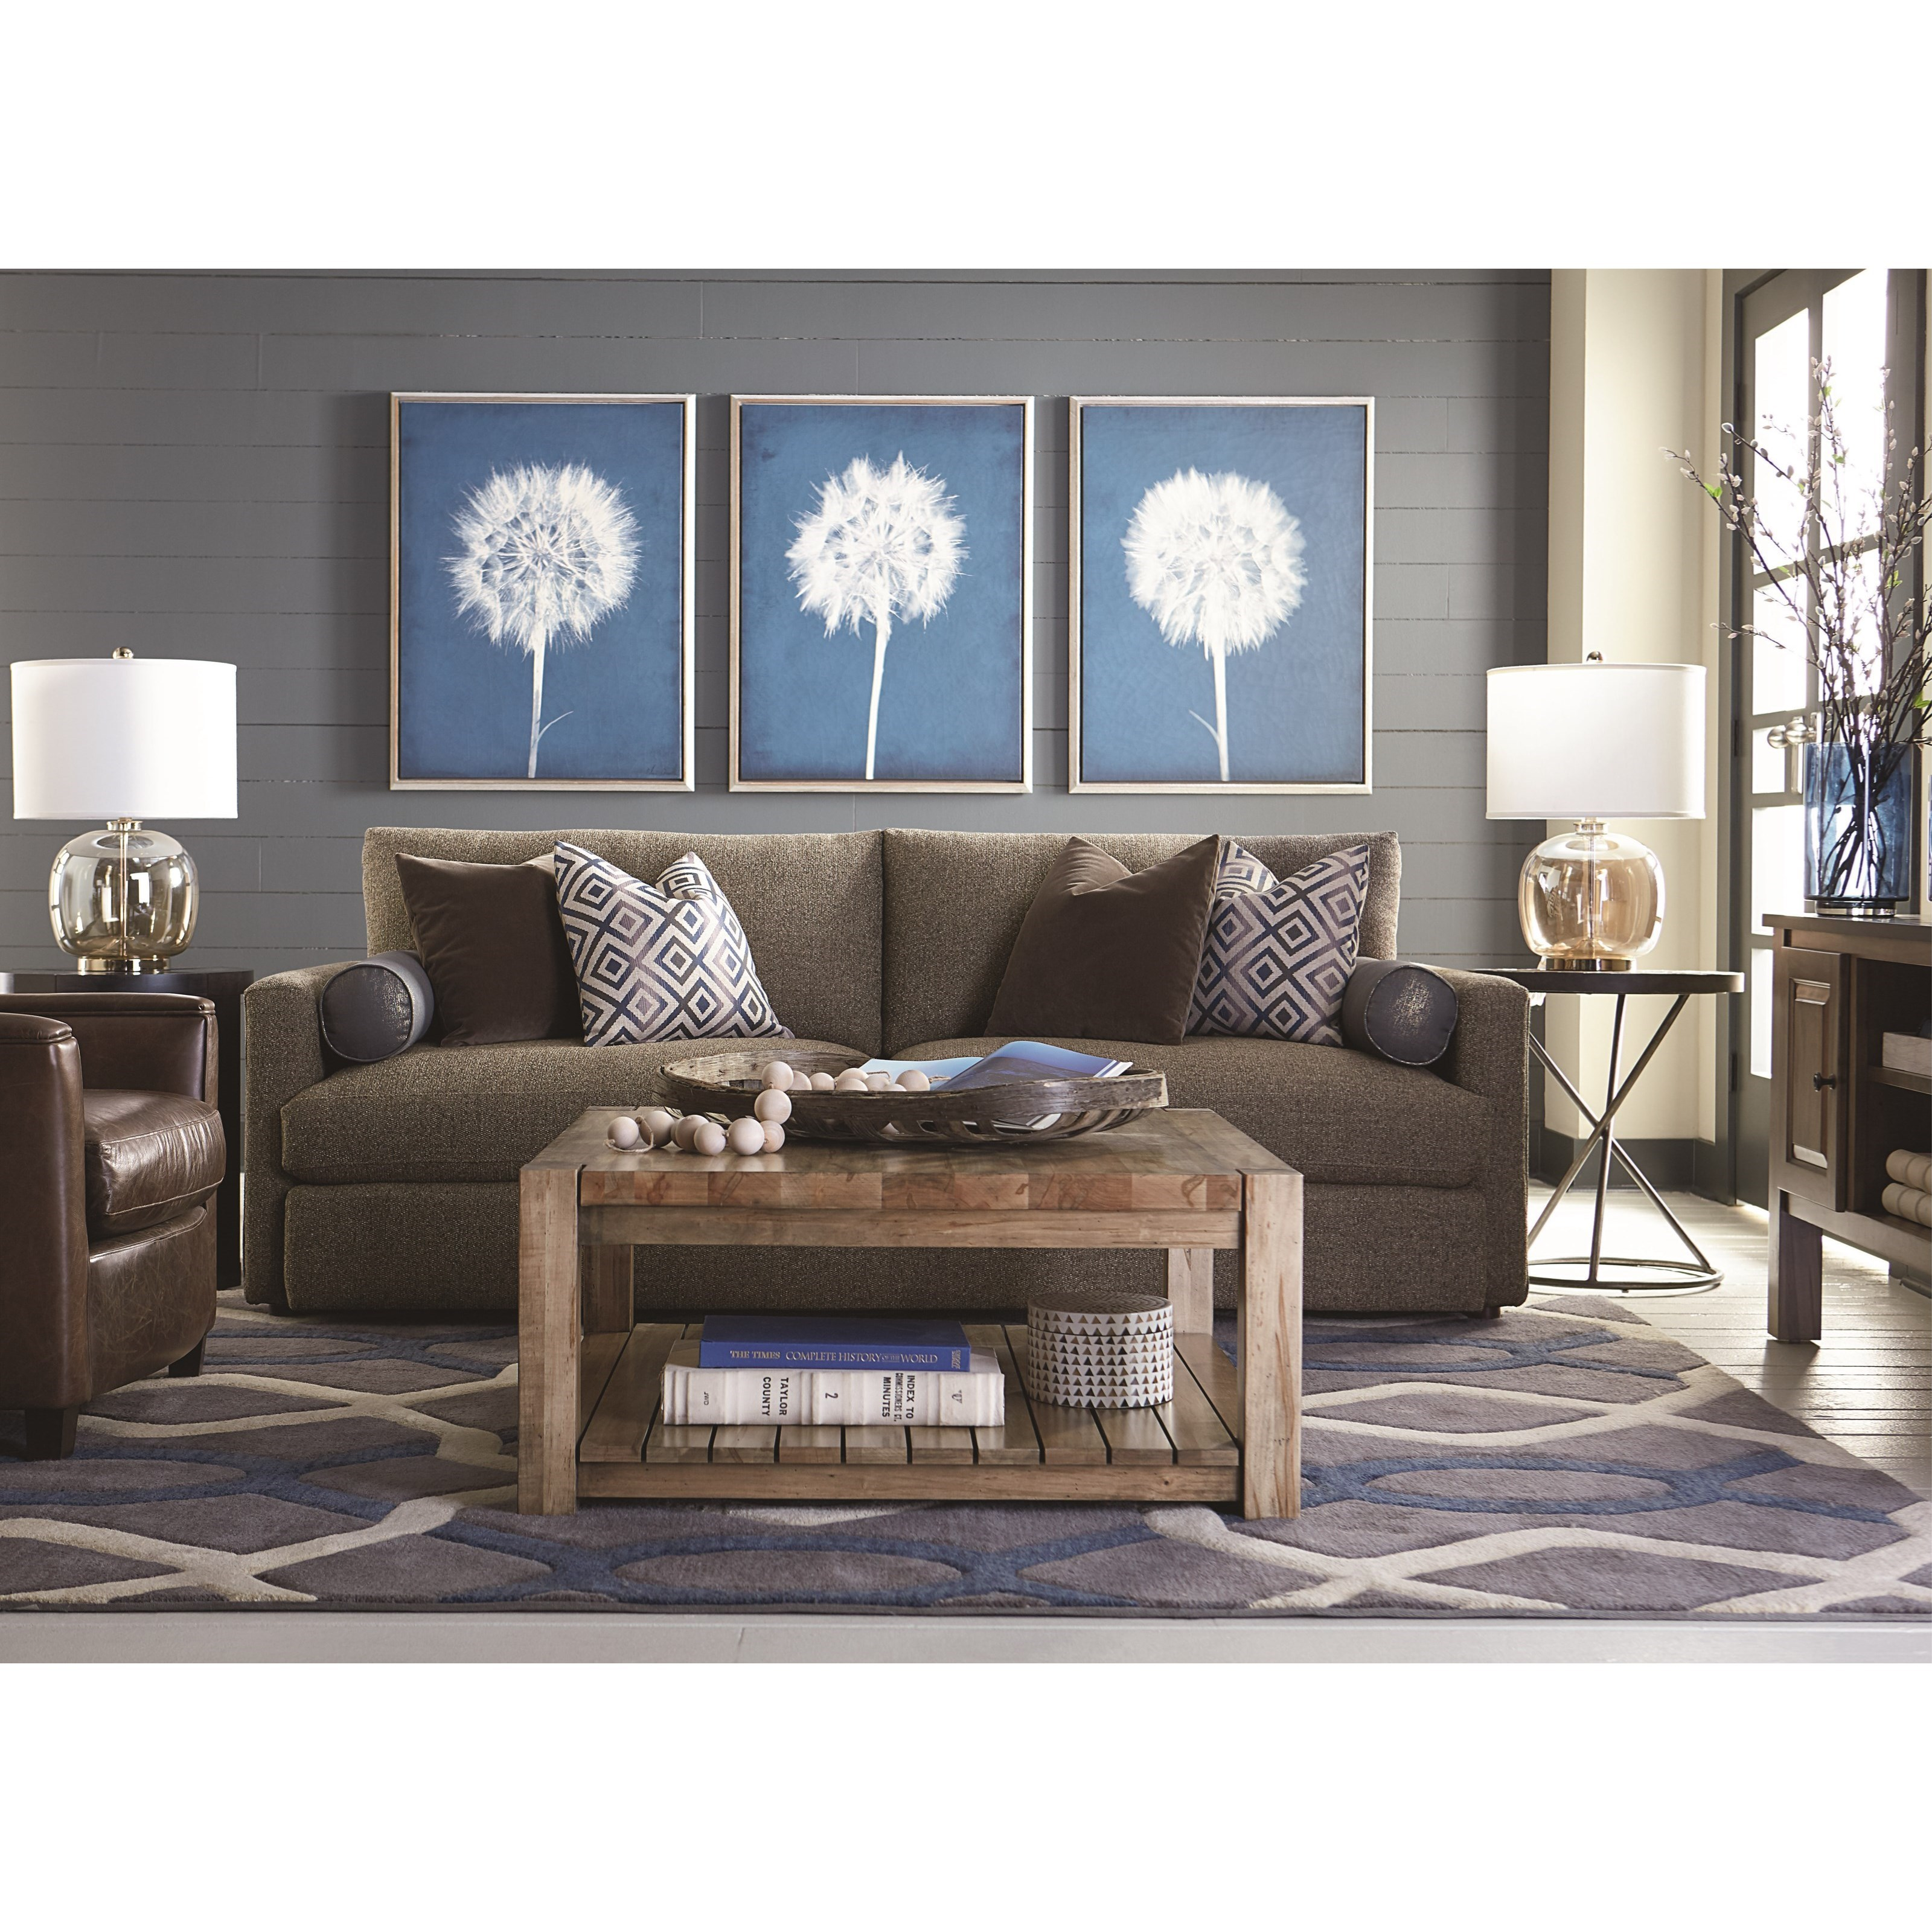 Bassett Furniture Store Hours: Bassett Allure 2611-62FC Contemporary Sofa With Track Arms